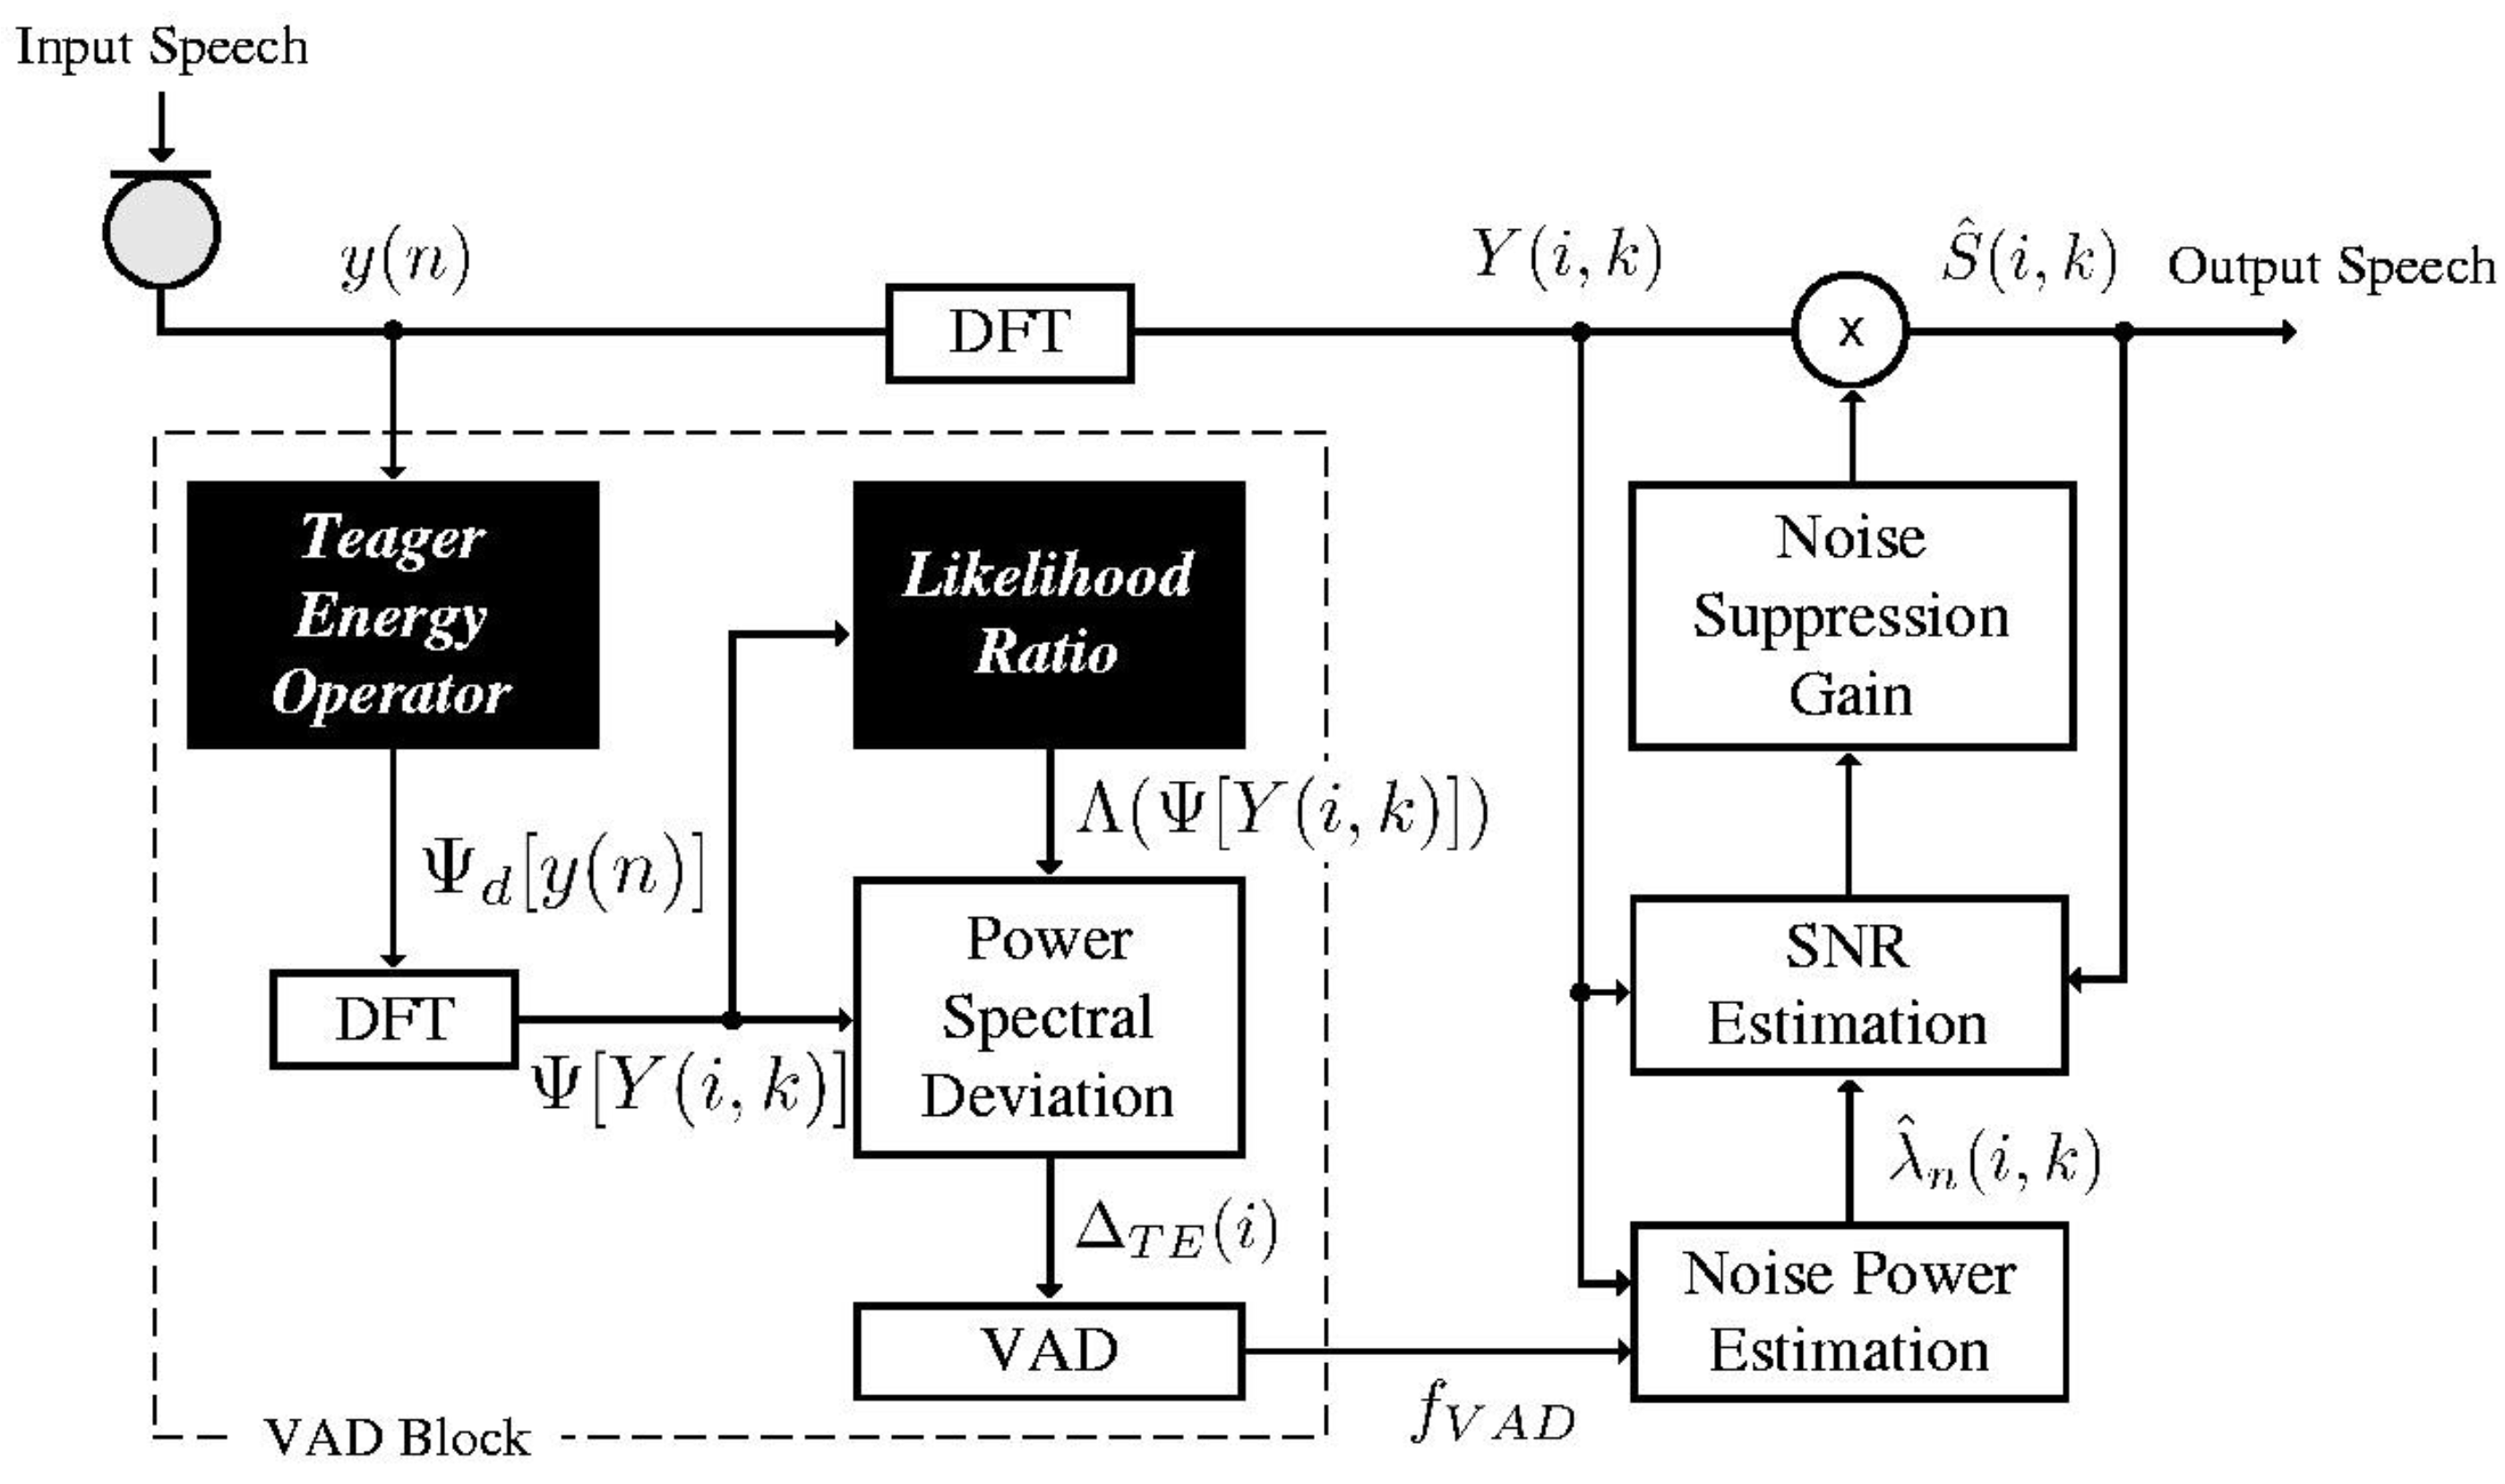 voice activity detection block diagram